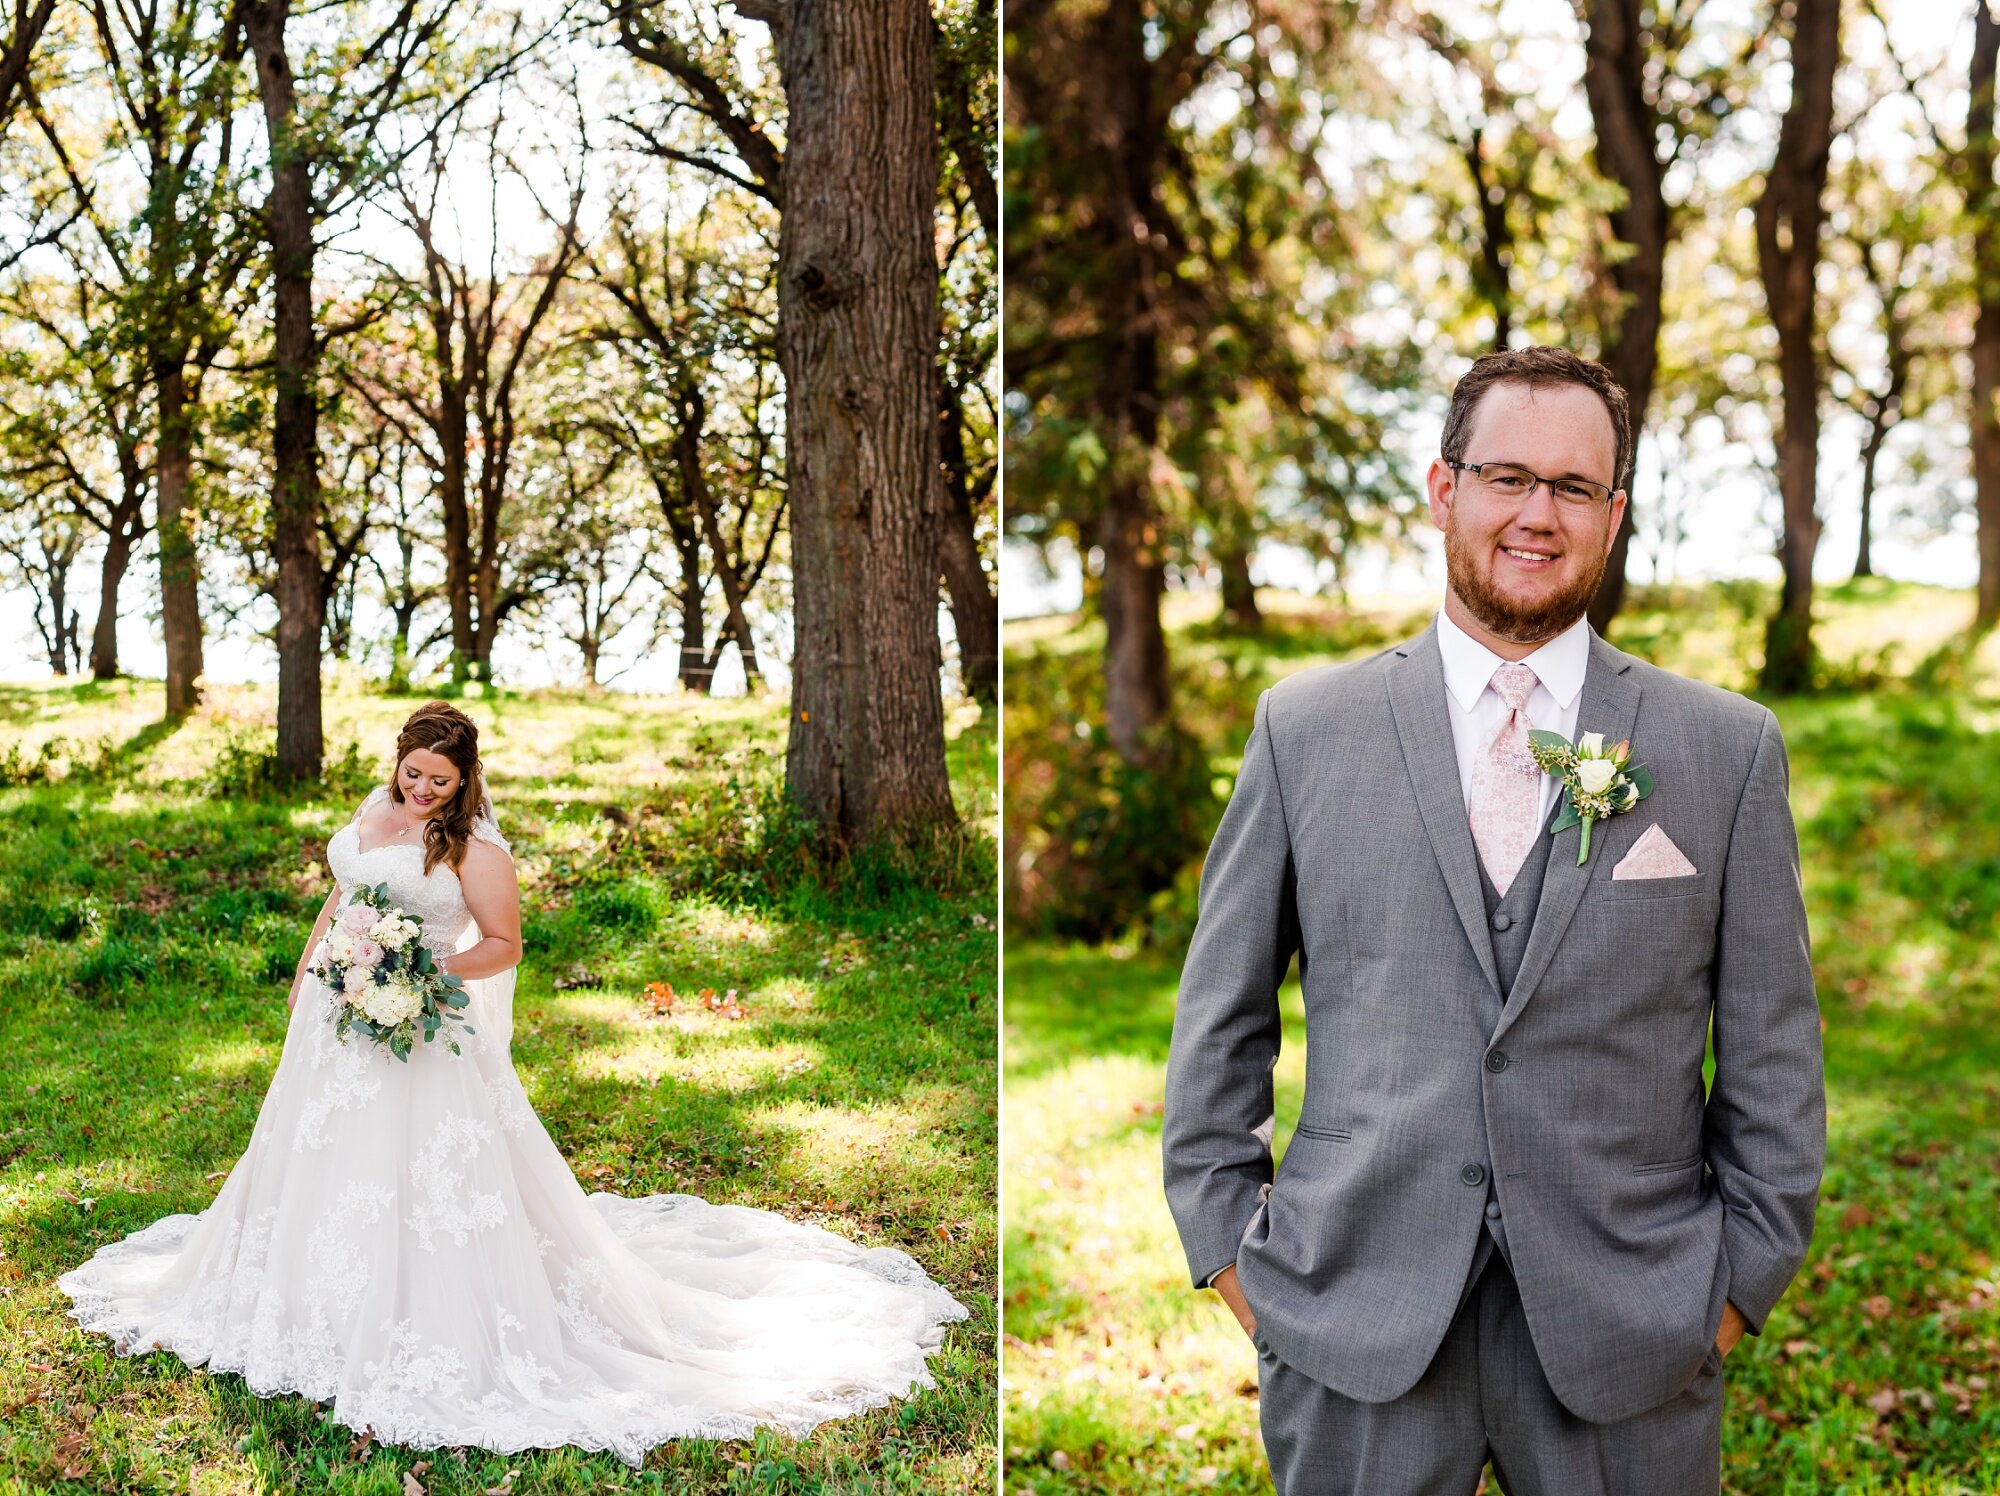 Amber Langerud Photography_Lake Park Minnesota, Outdoor Barn Wedding With Horses_6961.jpg